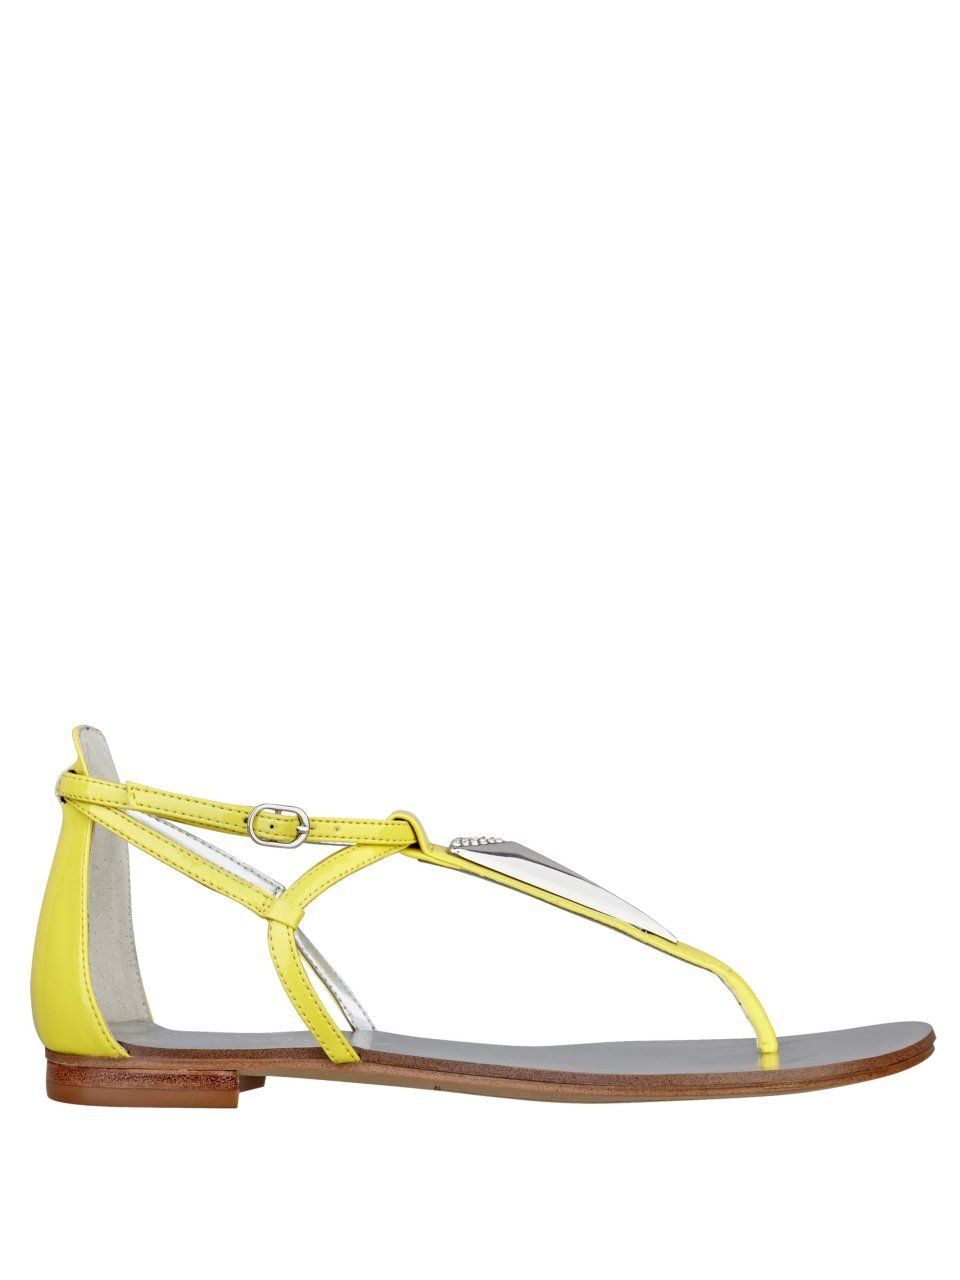 GUESS Rafi Triangle-Detail Sandals, YELLOW (8)